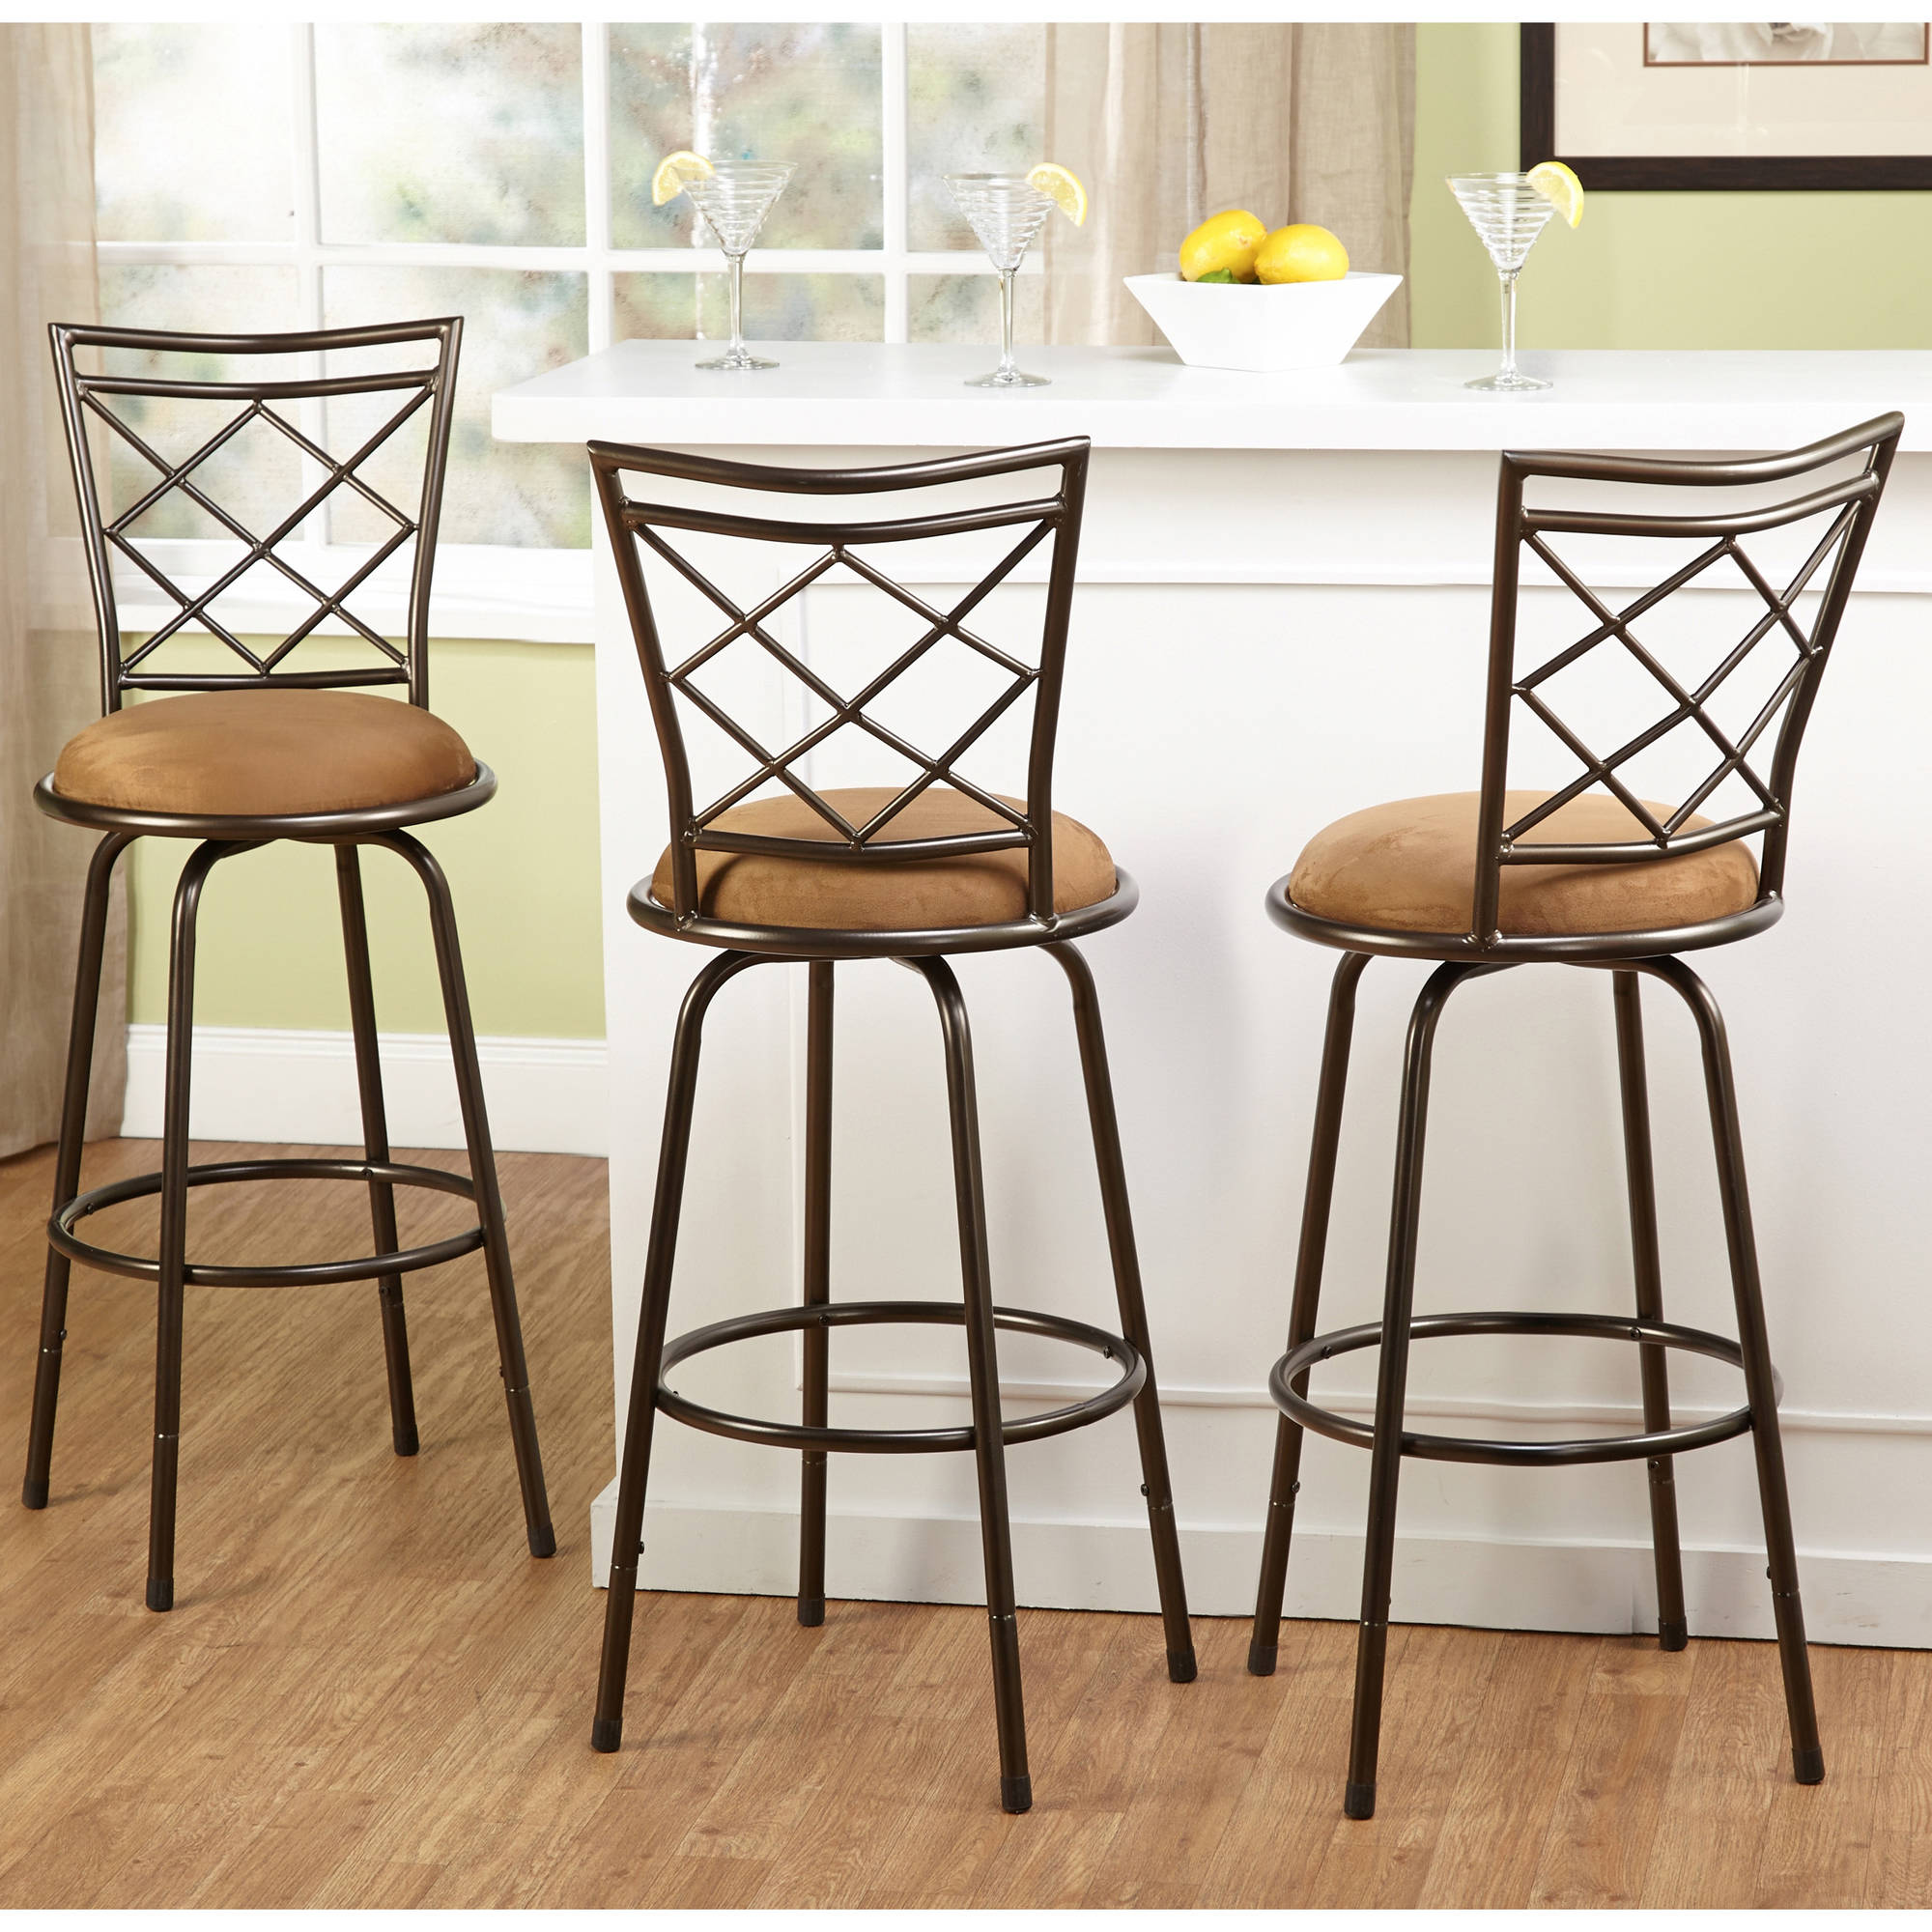 Tms avery adjustable height bar stool multiple colors set of 3 walmart com